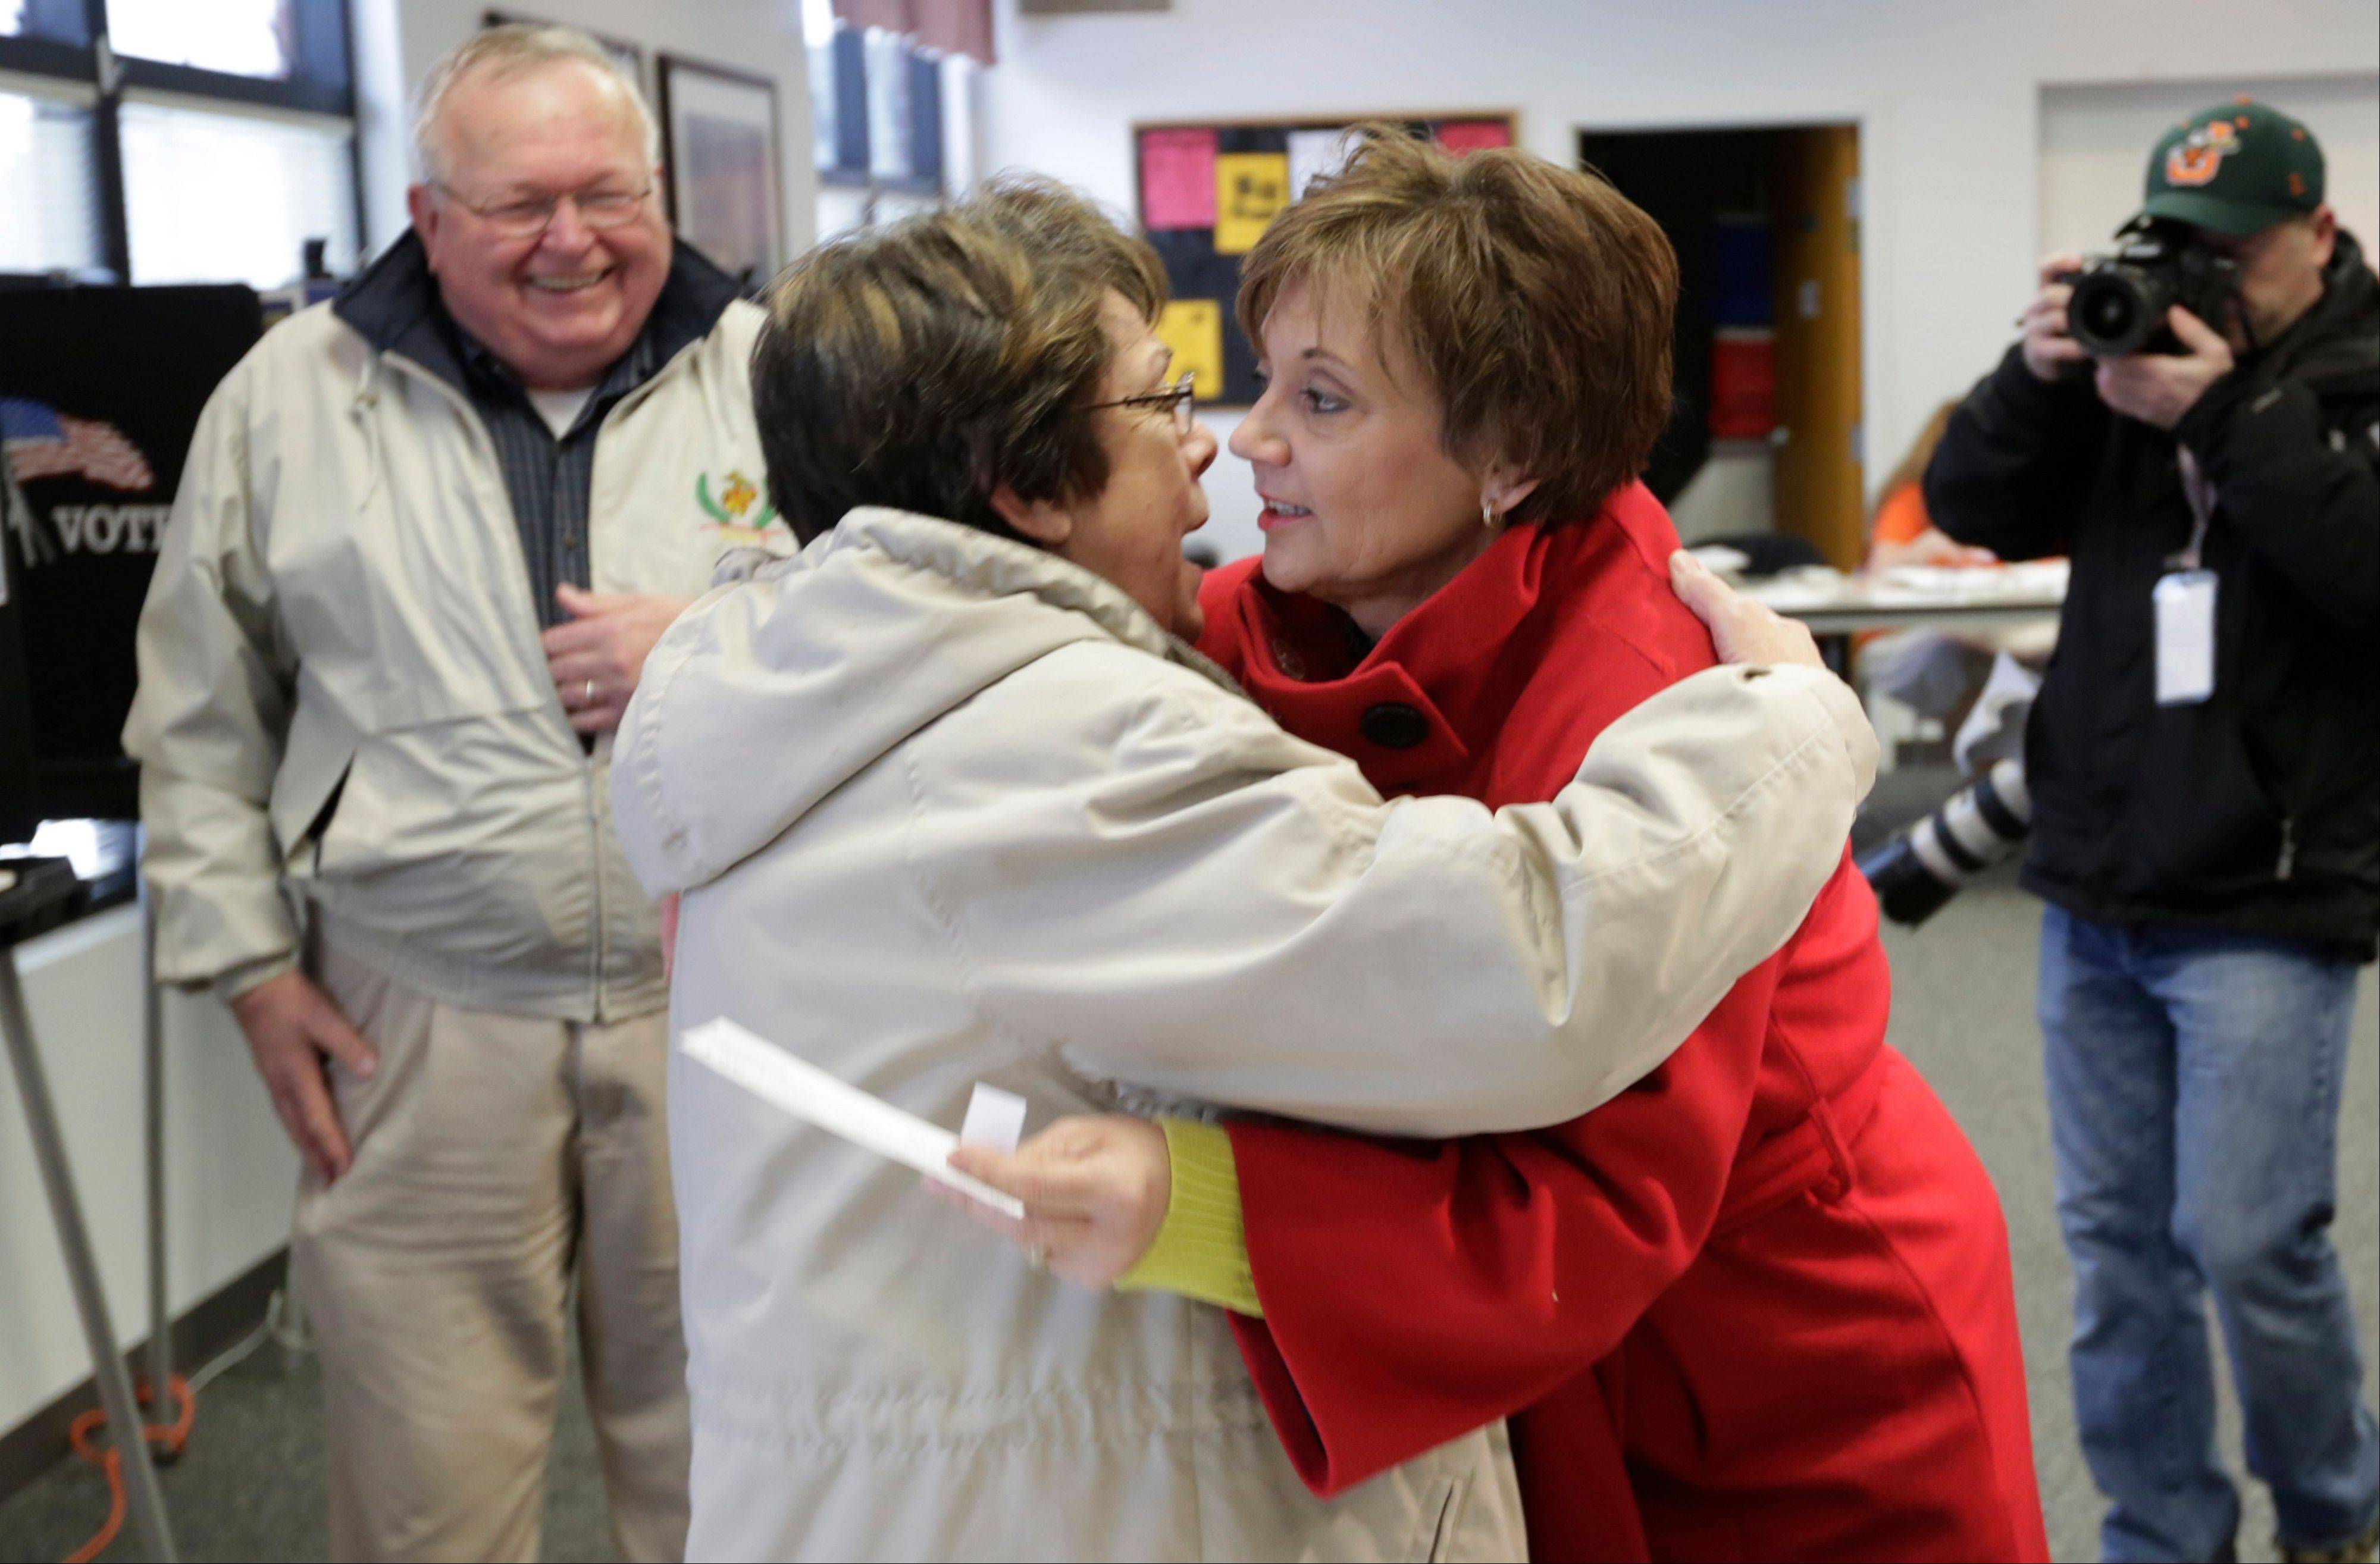 Former Democratic U.S. Rep. Debbie Halvorson hugs friend Rita Mulvihill as they casts their votes in Steger on Tuesday.